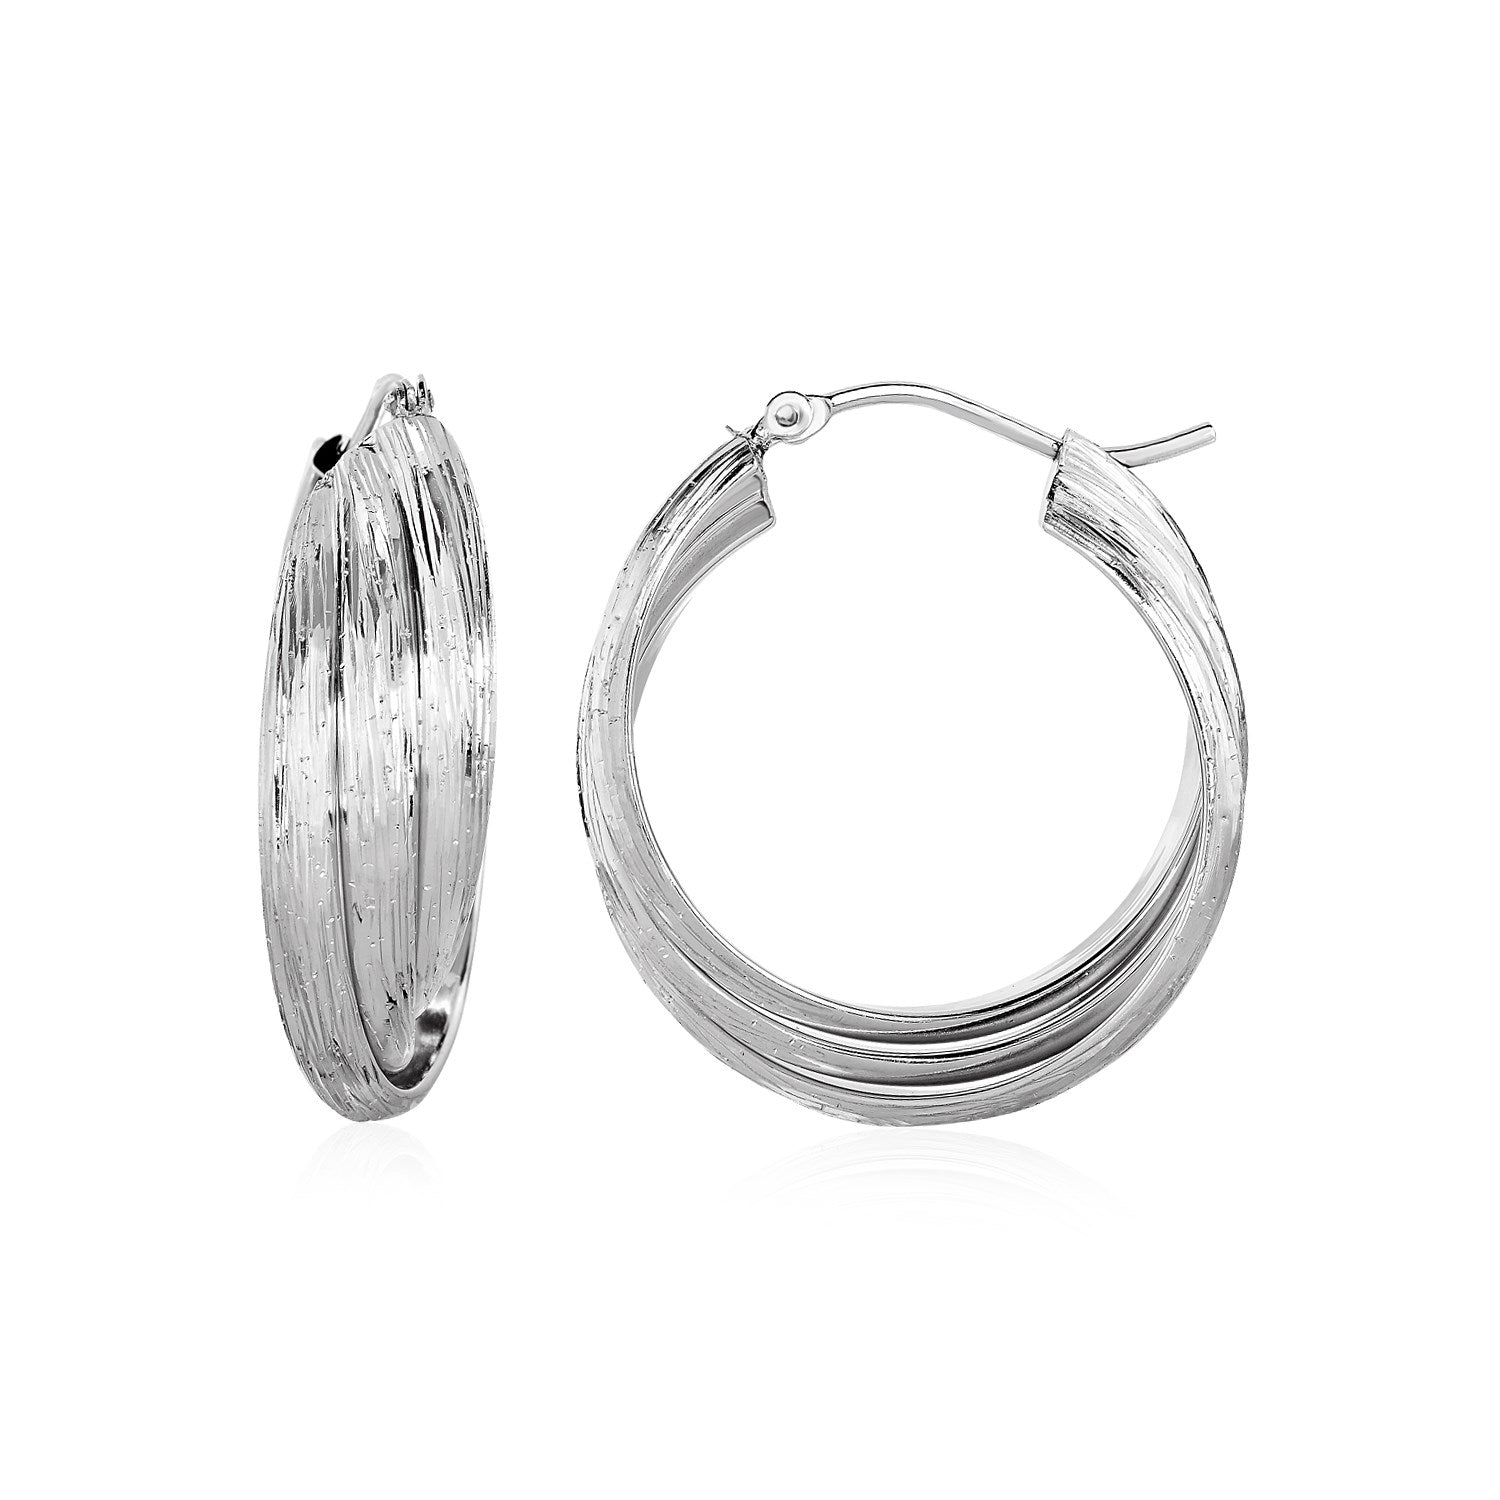 Three-Part Textured Hoop Earrings in Sterling Silver